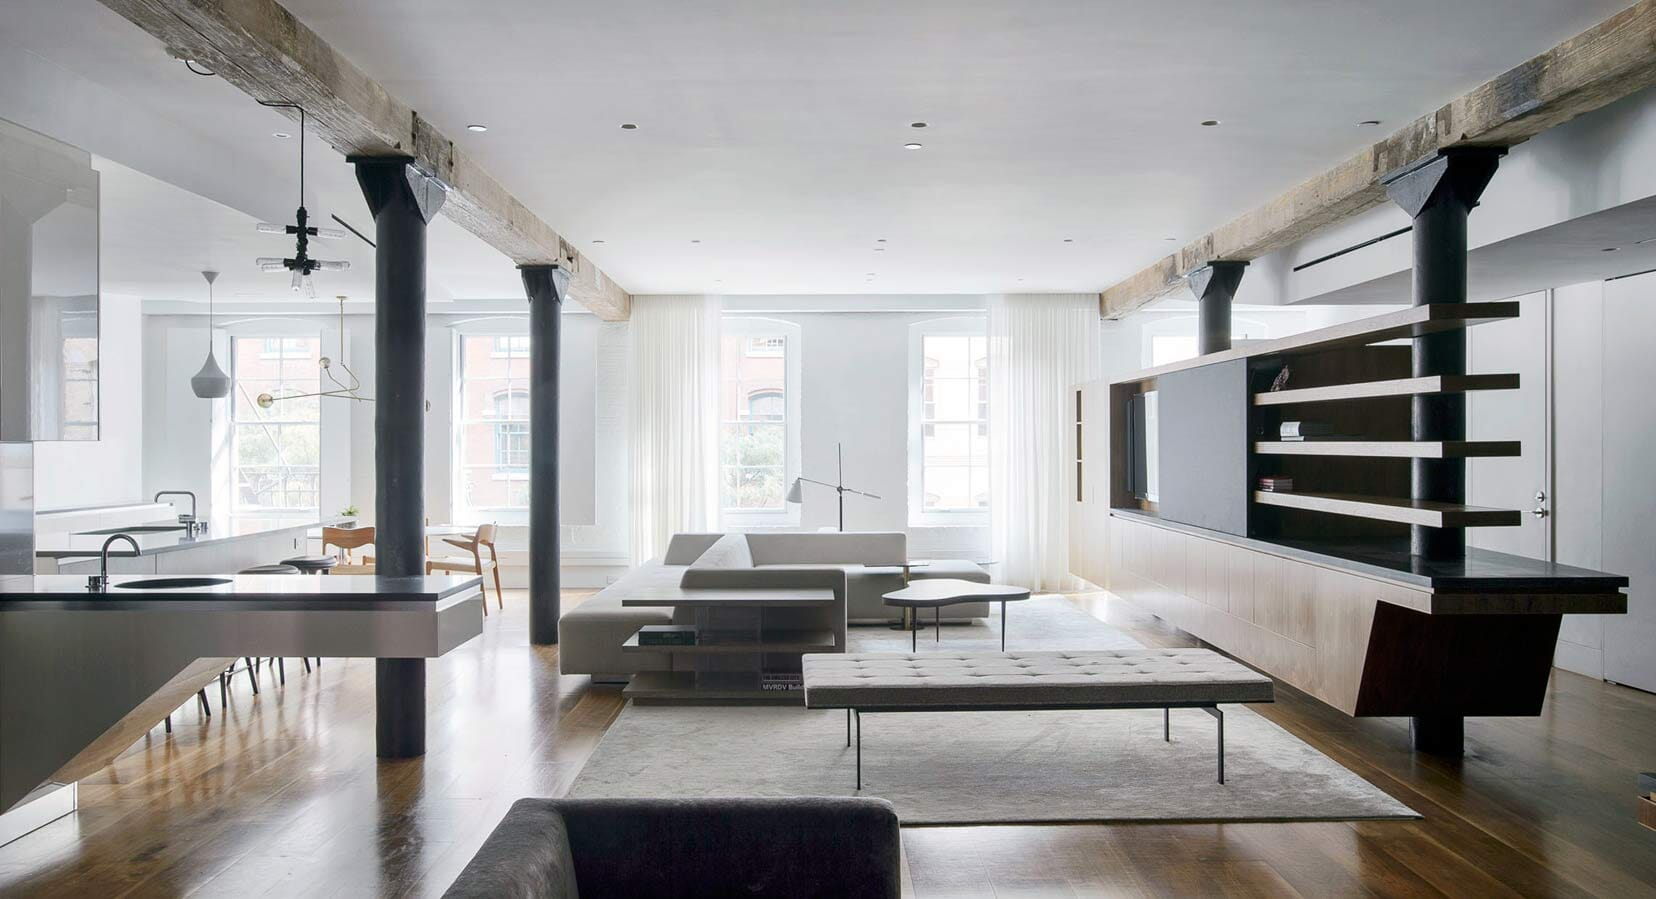 Office Of Architecture Create a New Idea of Loft Living